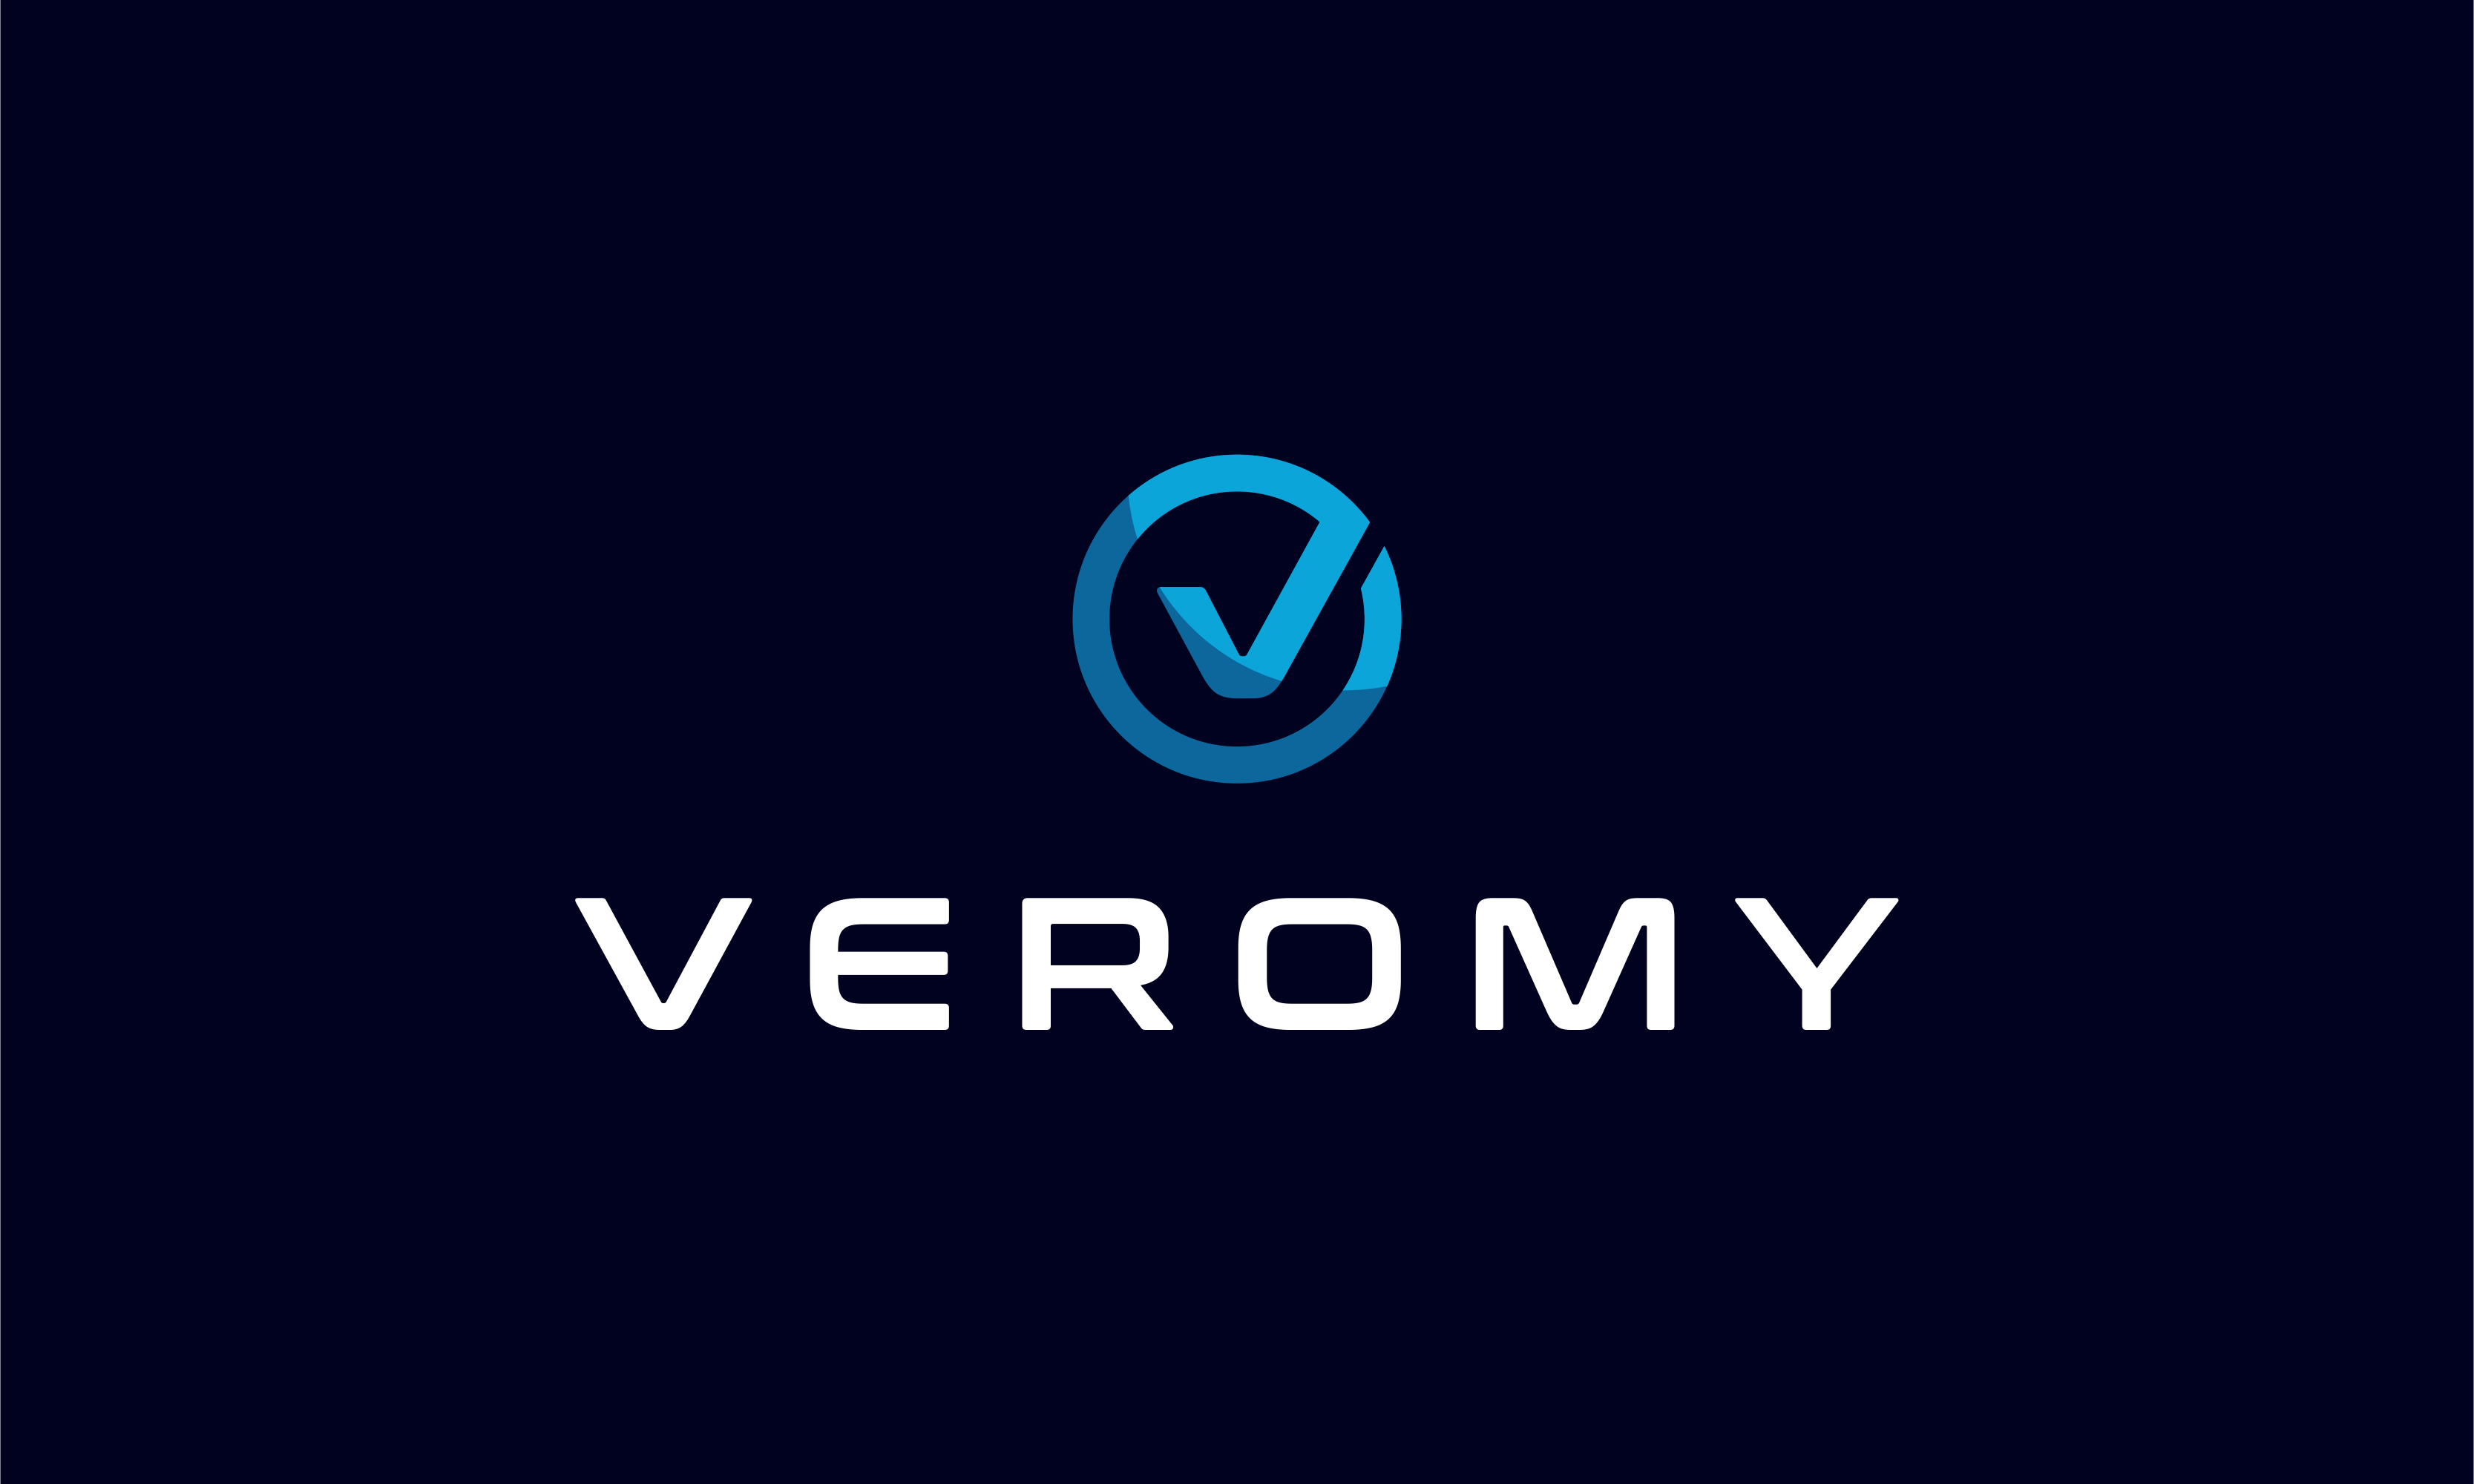 Veromy - Calm product name for sale